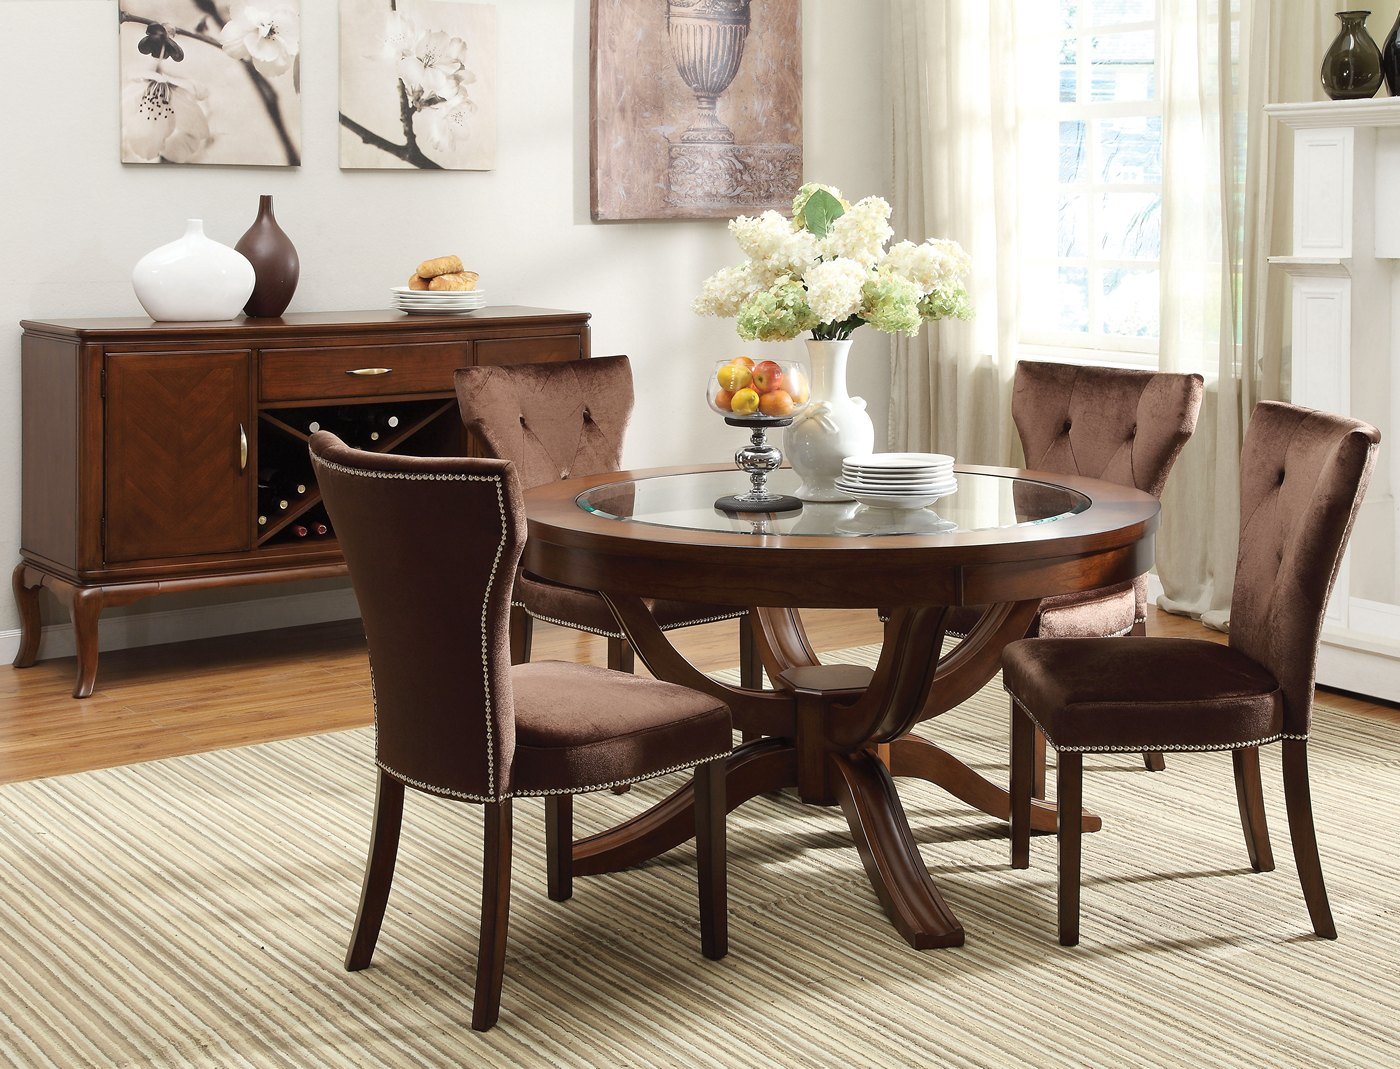 "Kayden 5-pc Round 54"" Dining Table Set W/ Glass Top In"